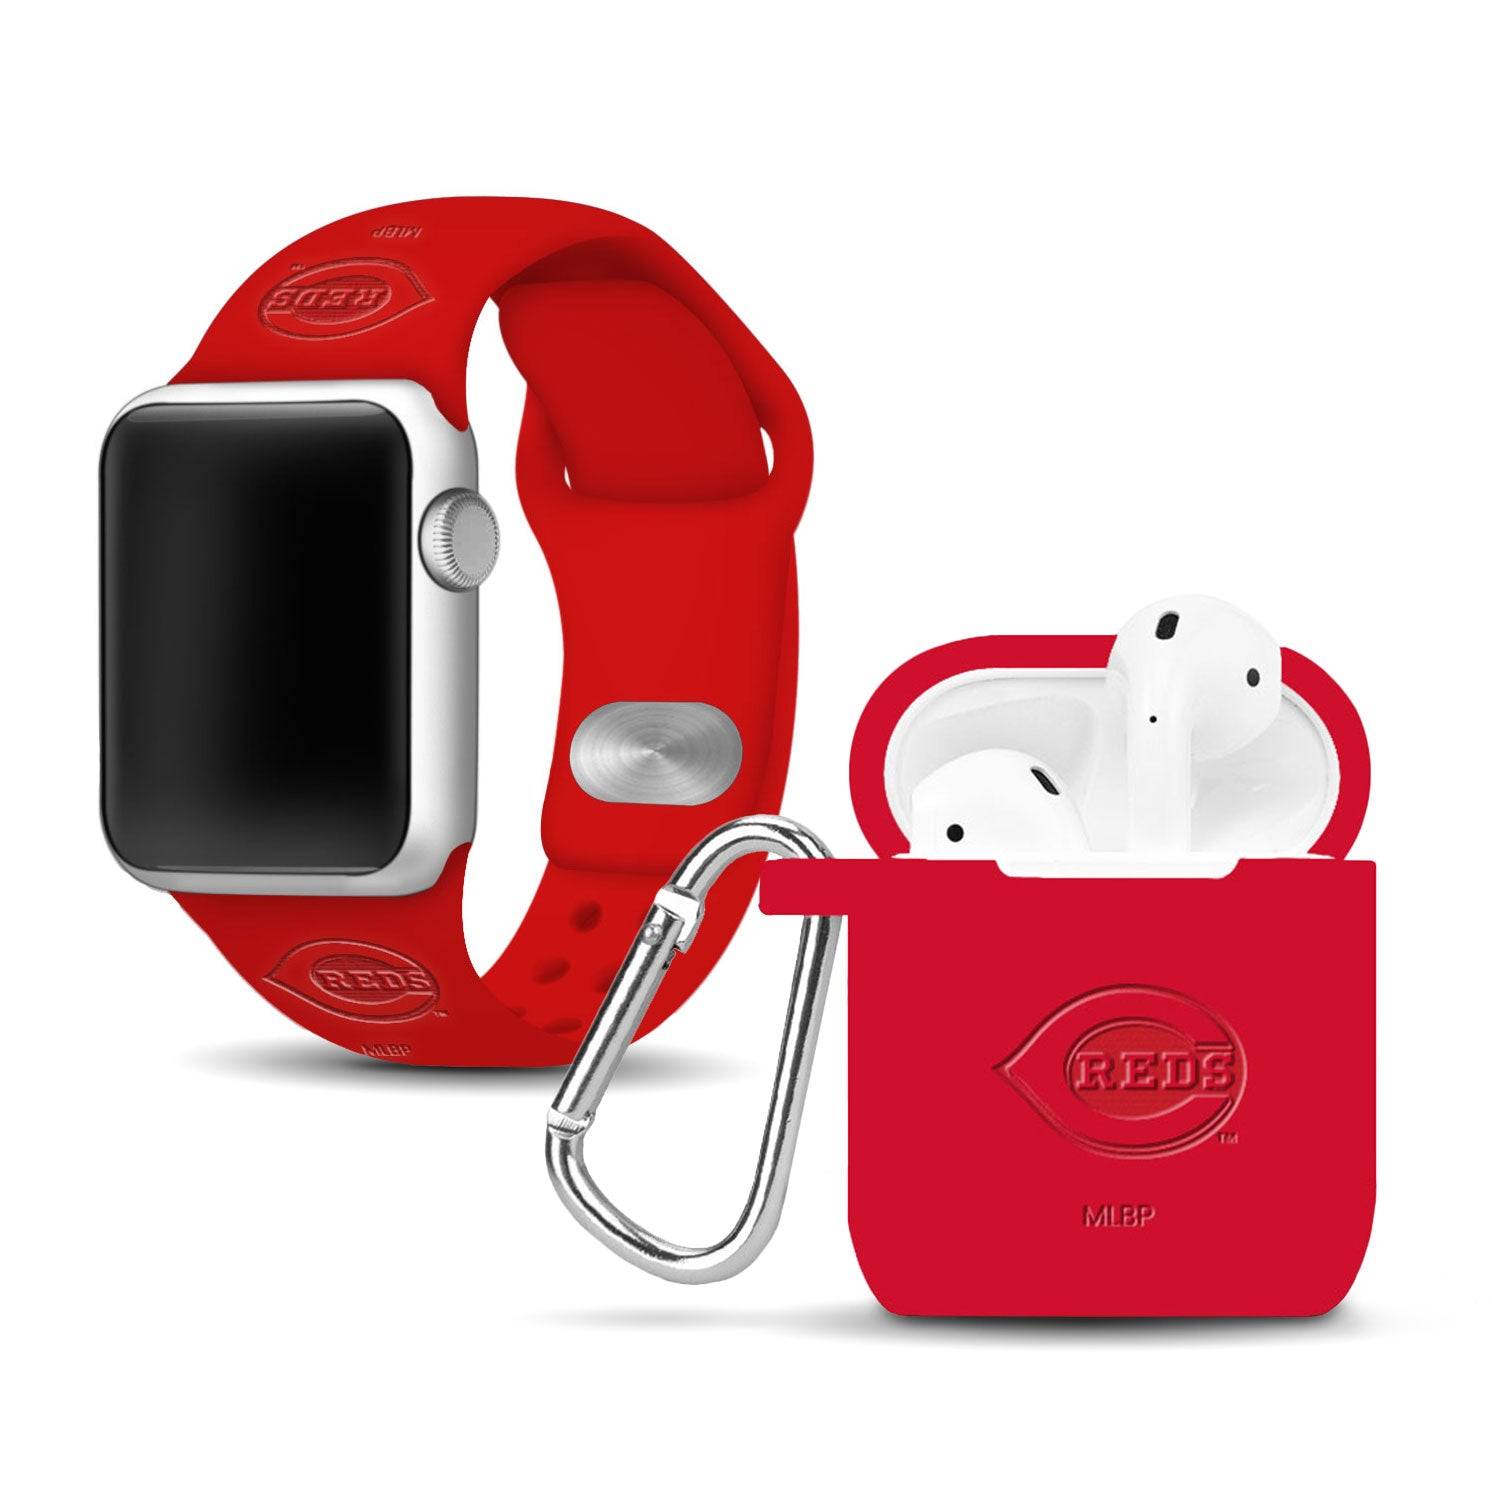 Cincinnati Reds Debossed Apple Combo Package - AffinityBands